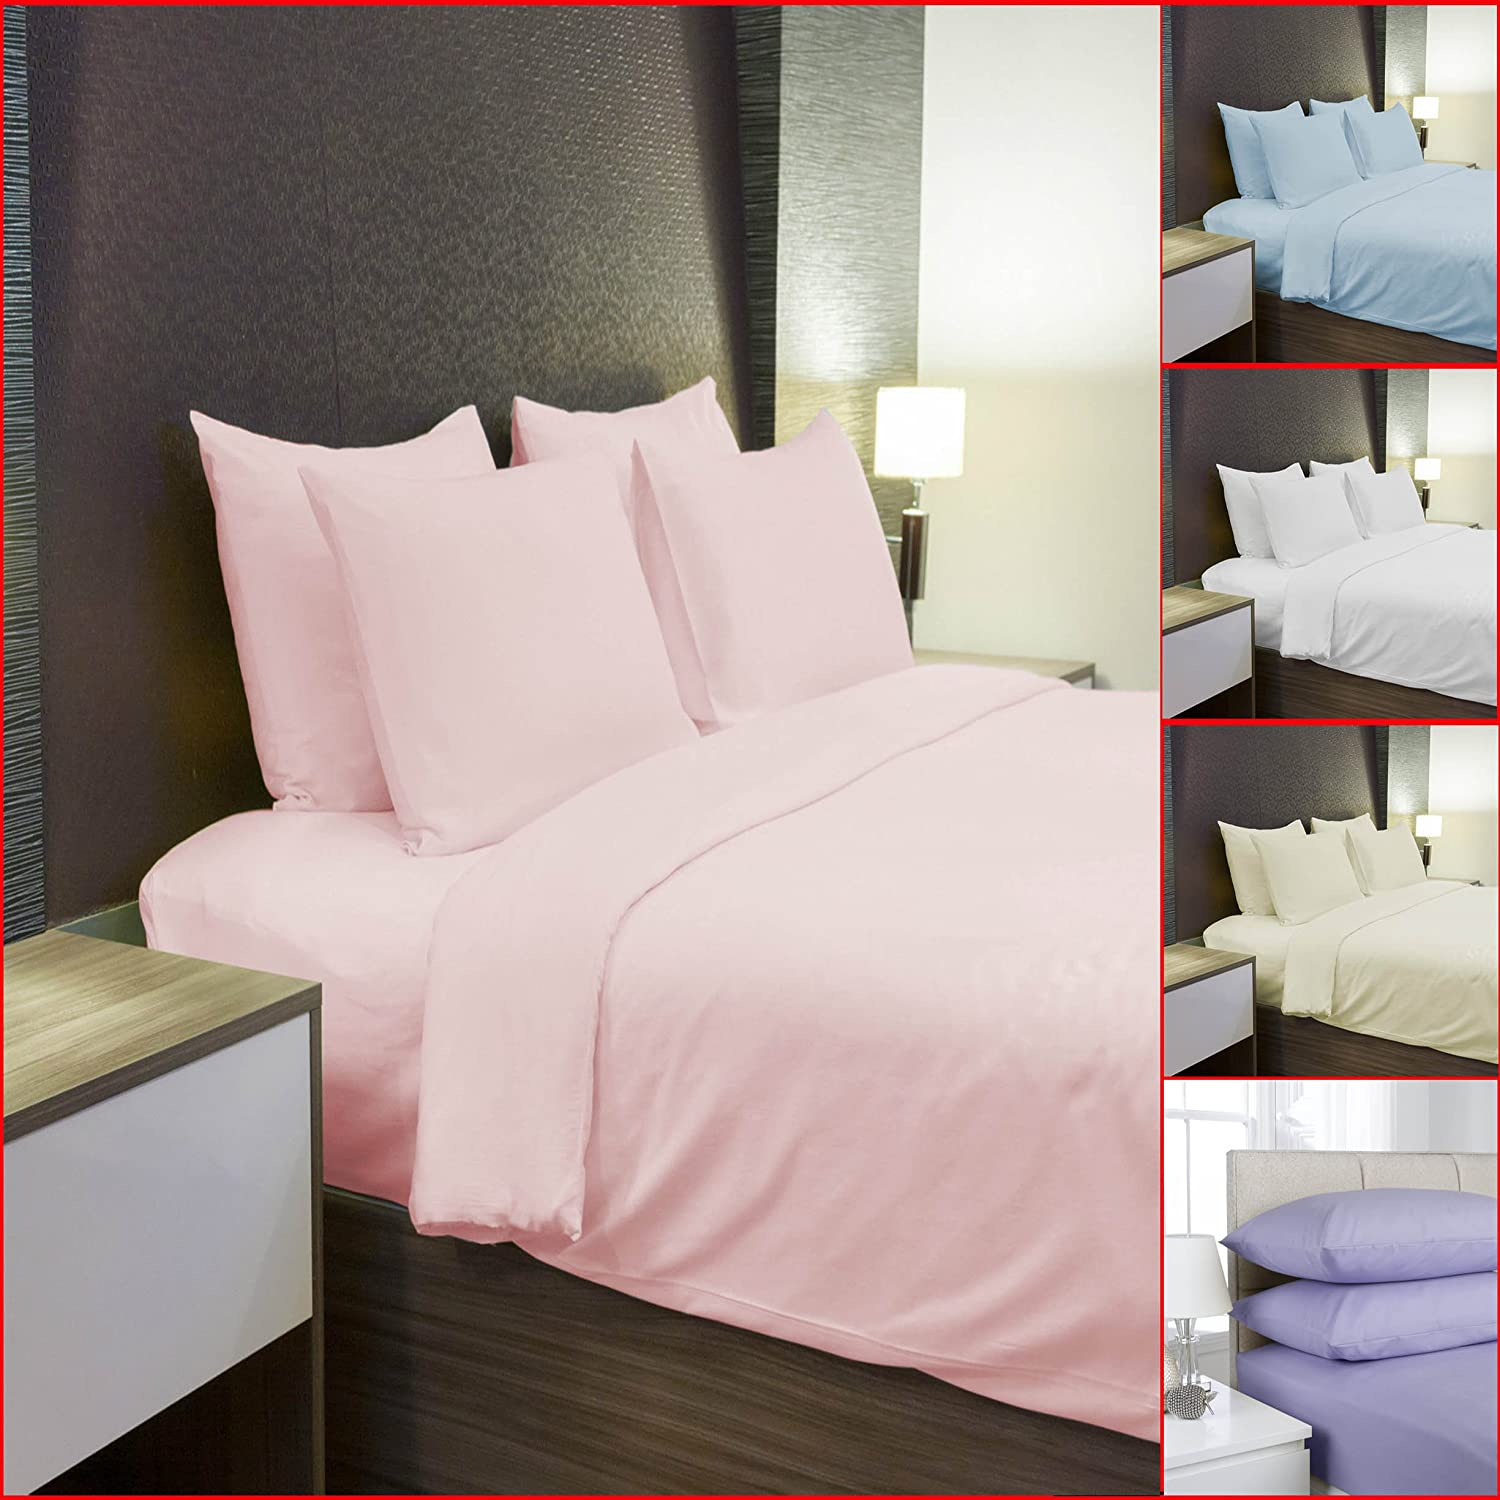 Pillowcases Pair 100/% Brushed Cotton Thermal Flannel Fitted Sheet Flat Sheet